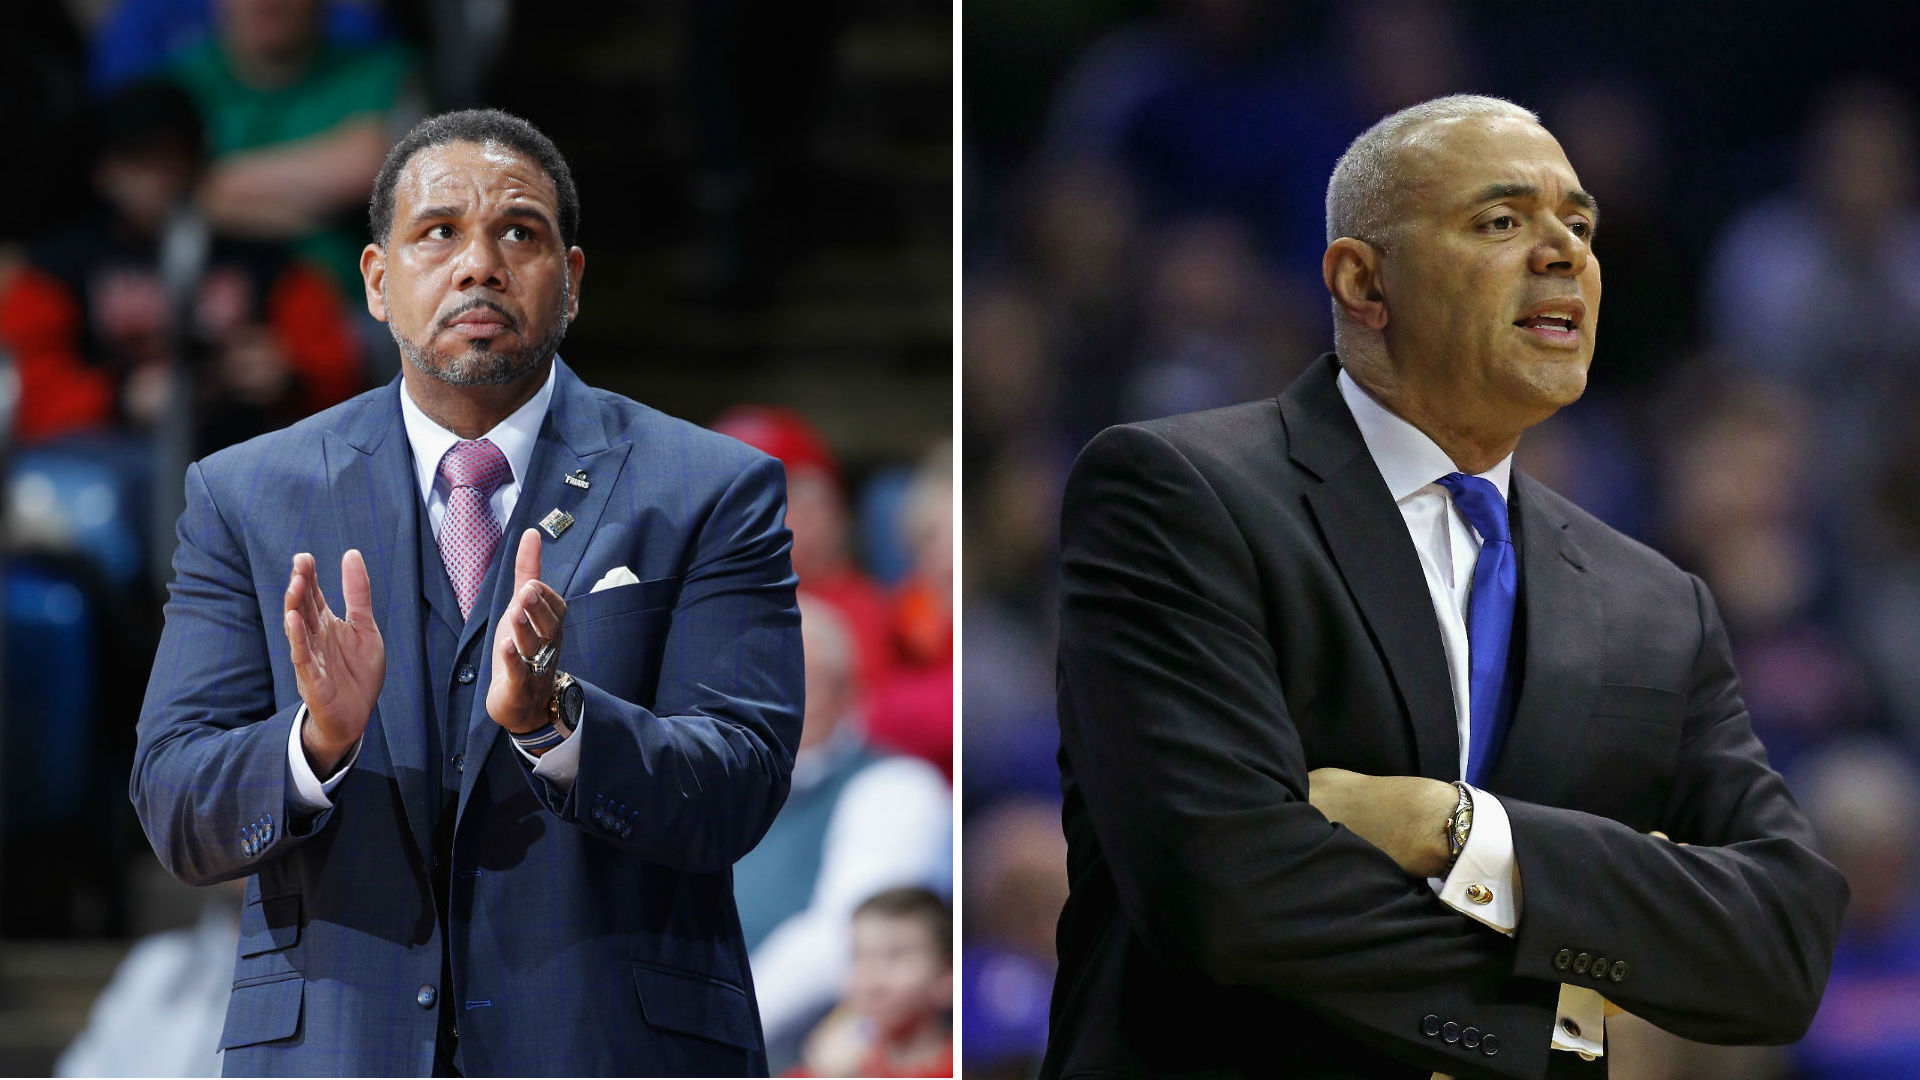 FS1 will mic up coaches, let them tell the story of DePaul-Providence game